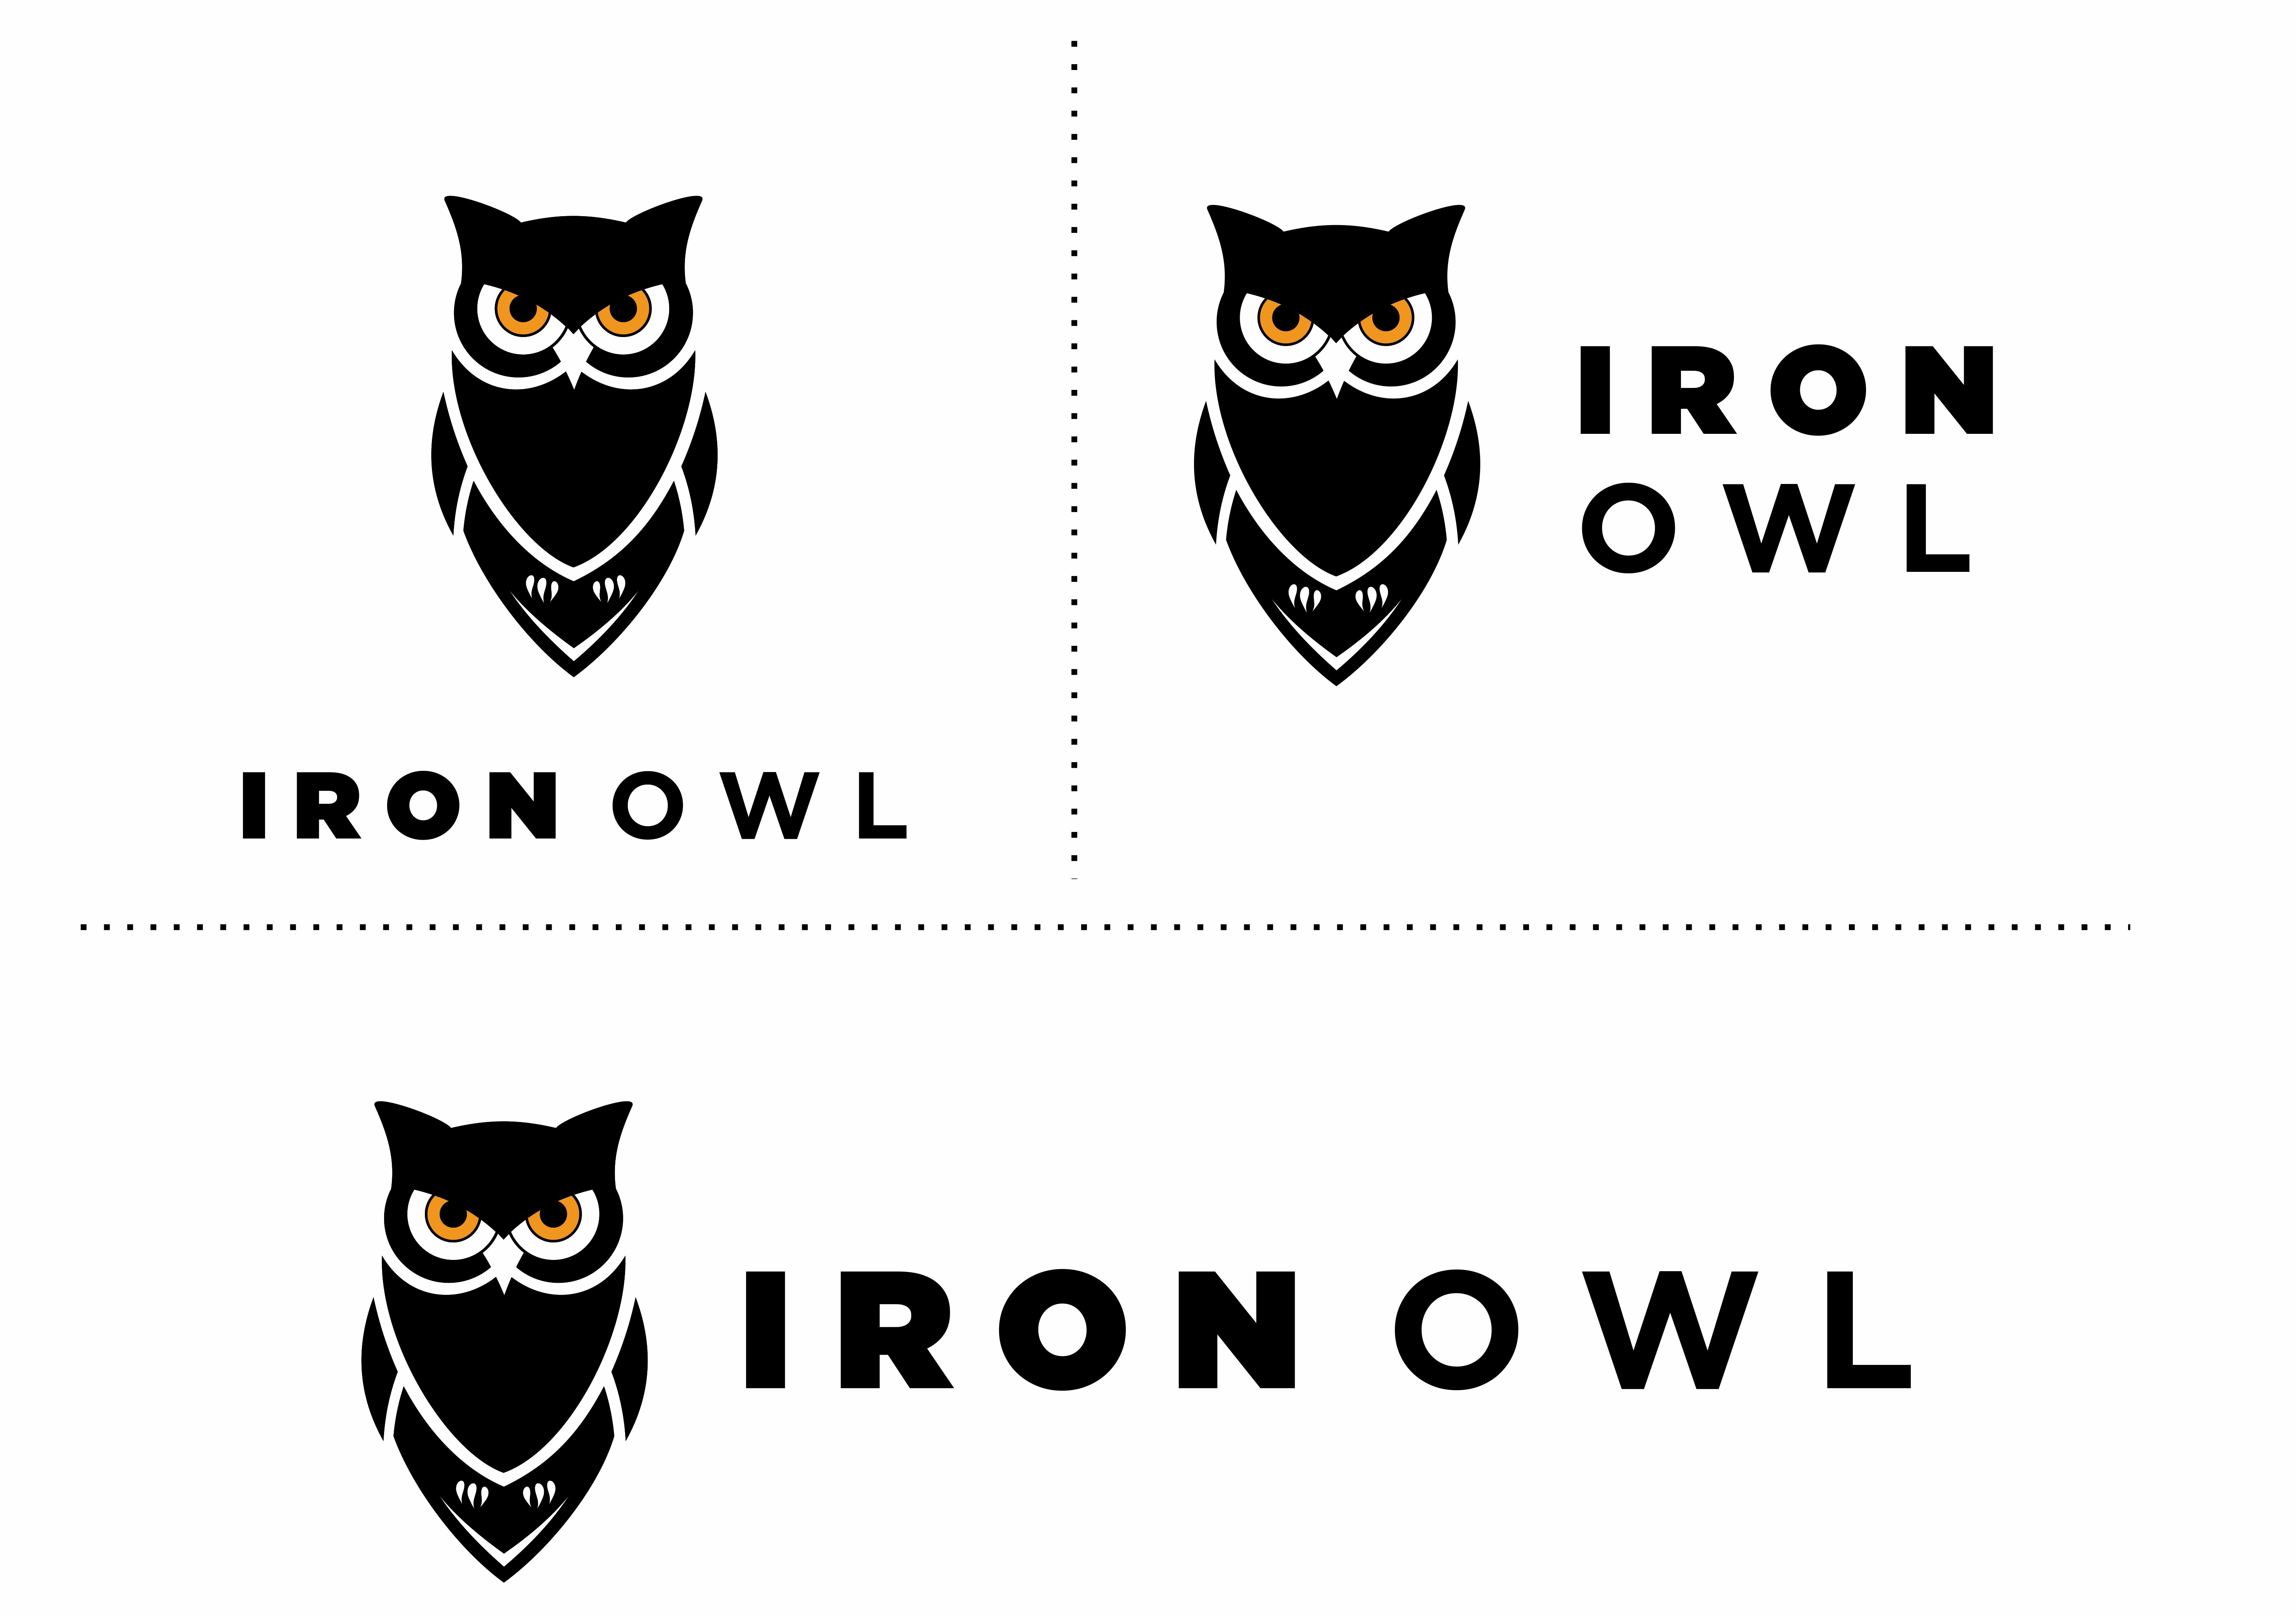 Woodwork business needs new logo with owl icon